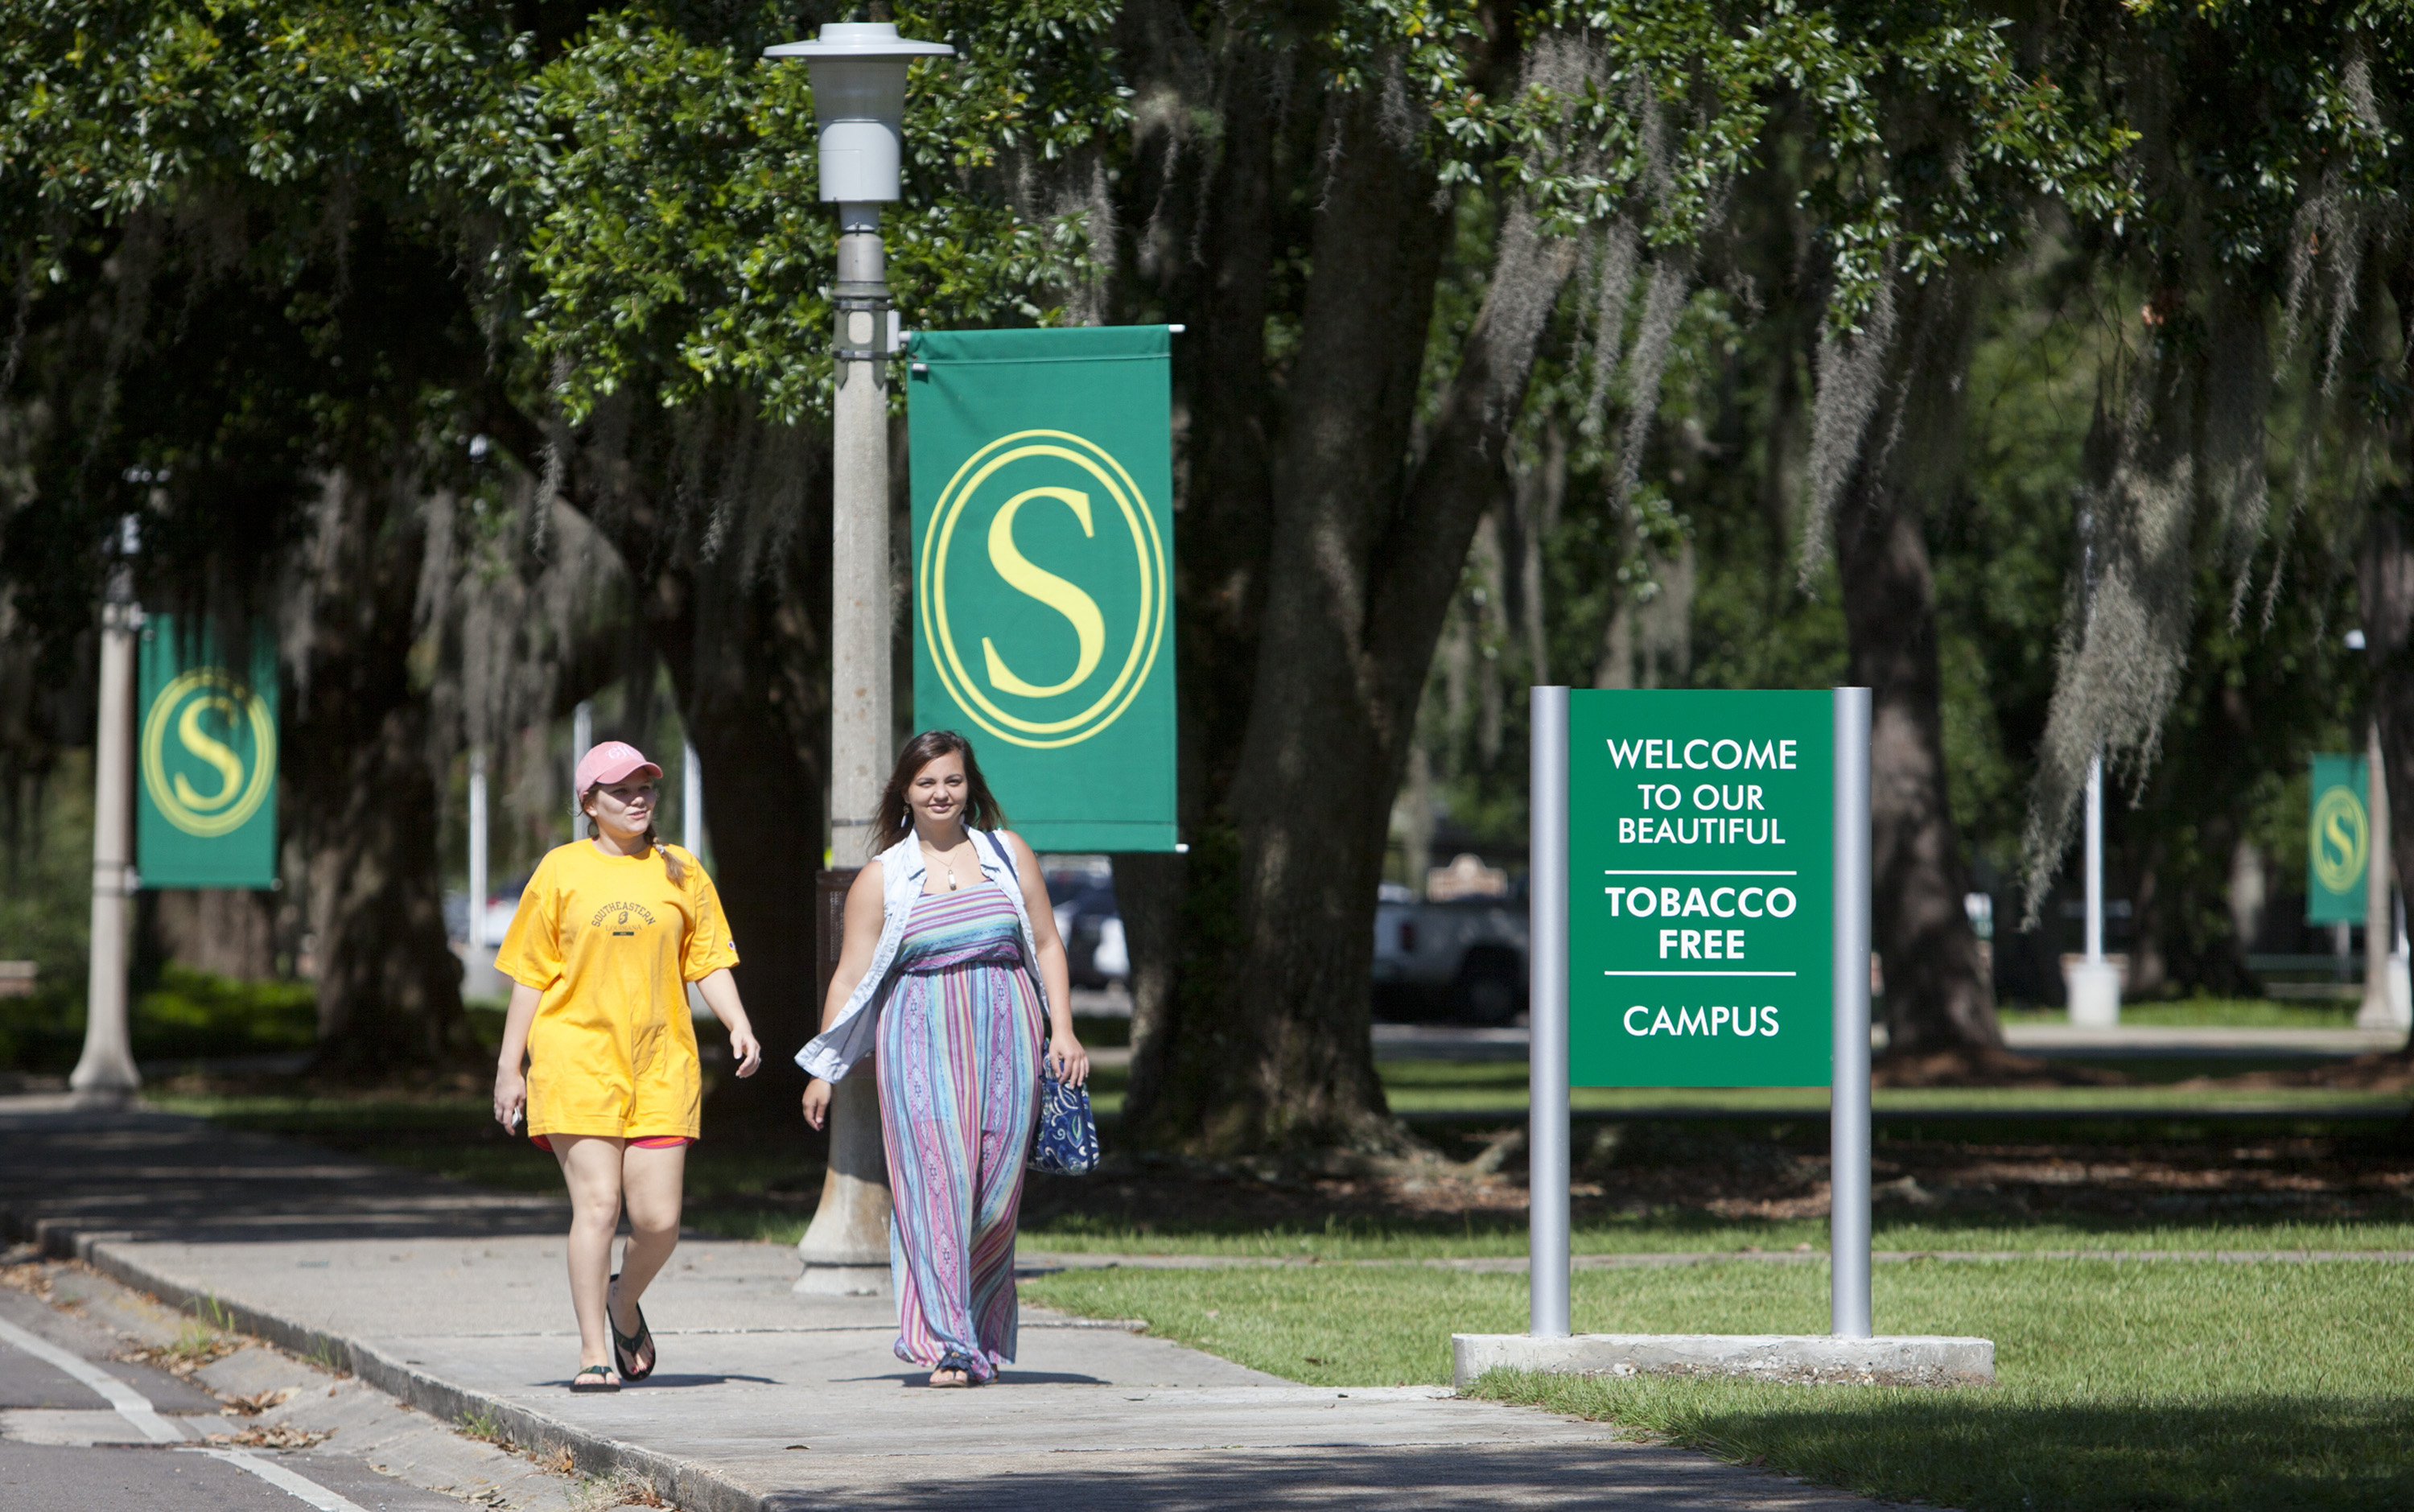 Southeastern to be tobacco free by August 1